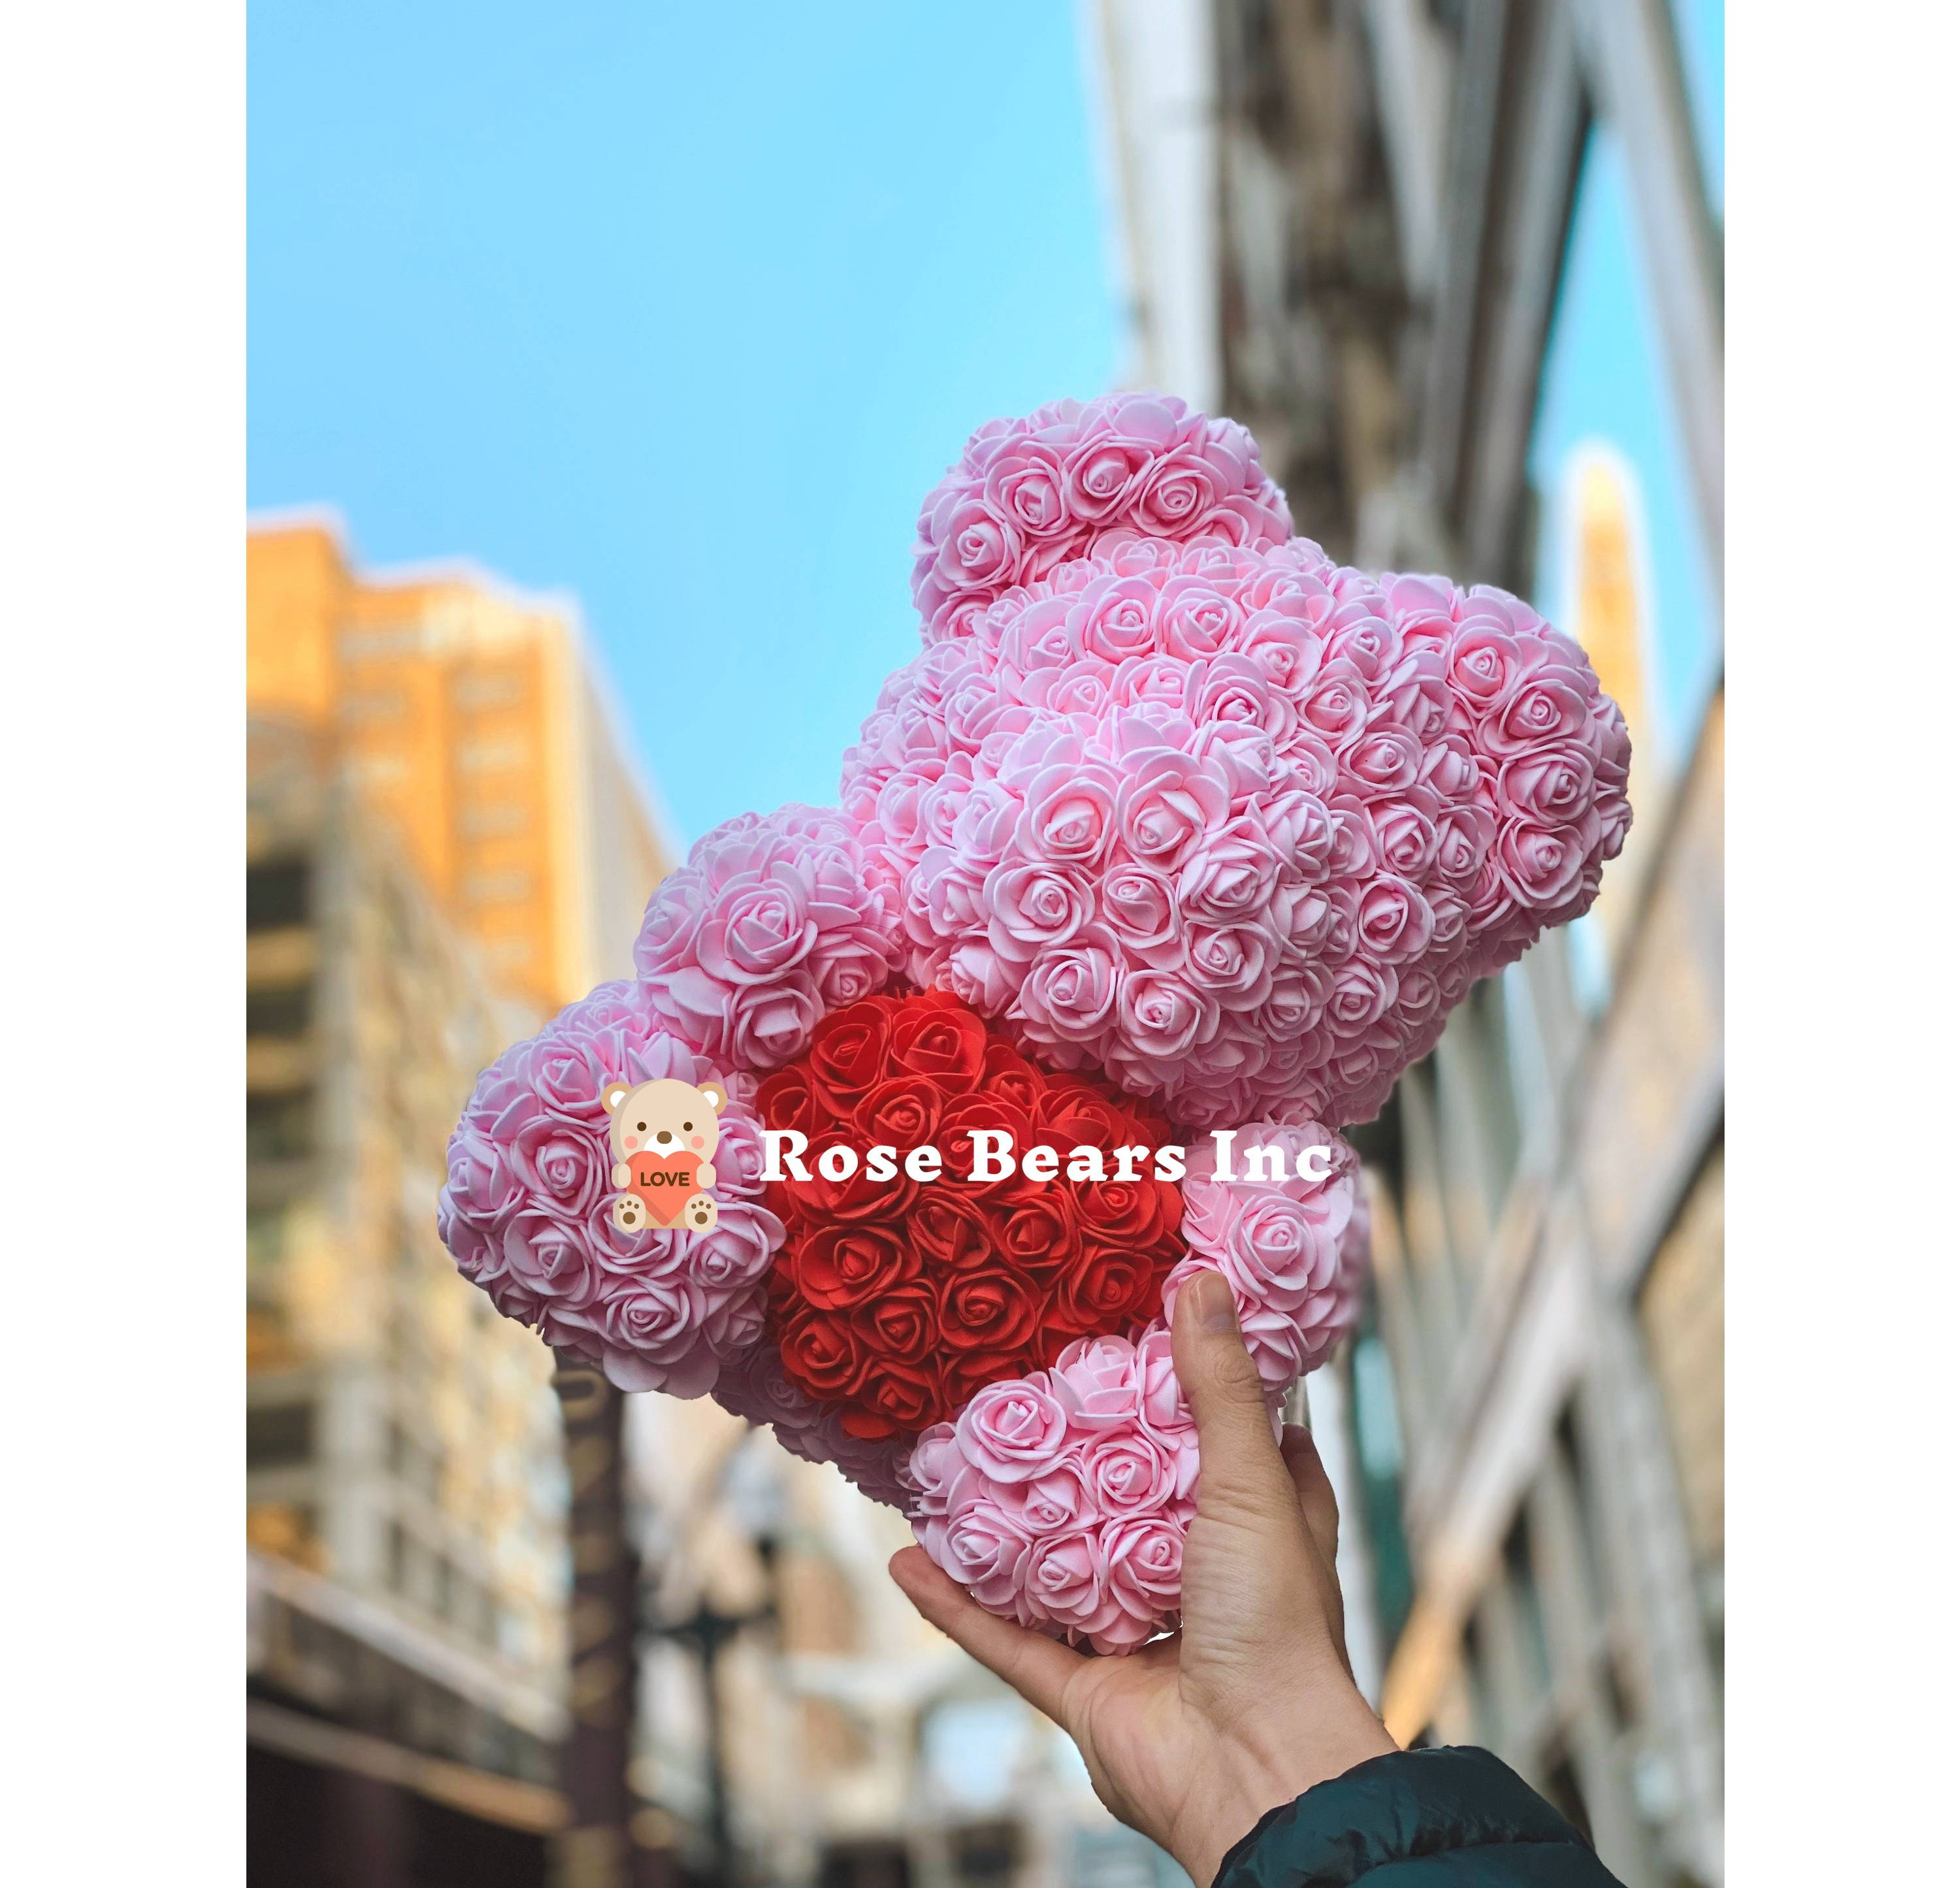 valentine's day gifts under 100, valentine's day gifts for her